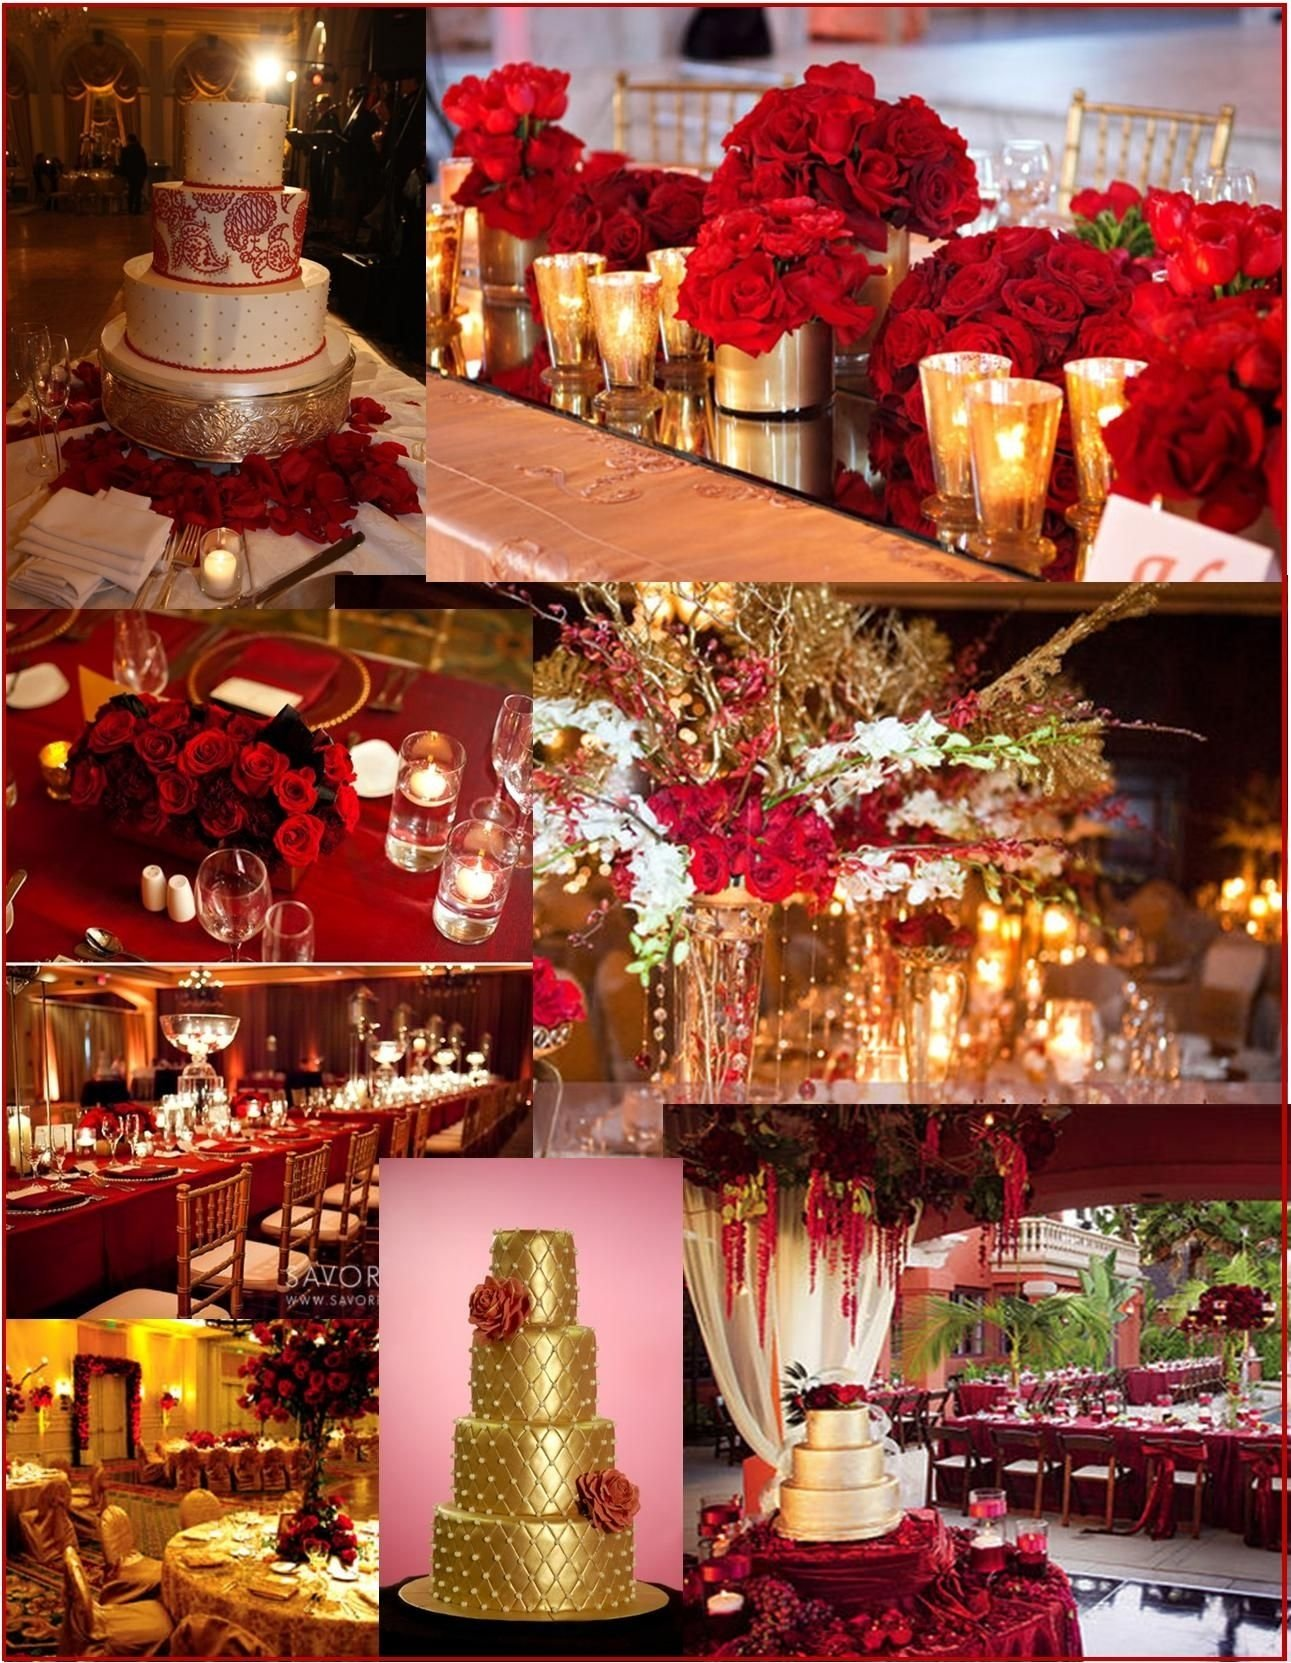 red and gold wedding and event ideas | wedding reception | pinterest